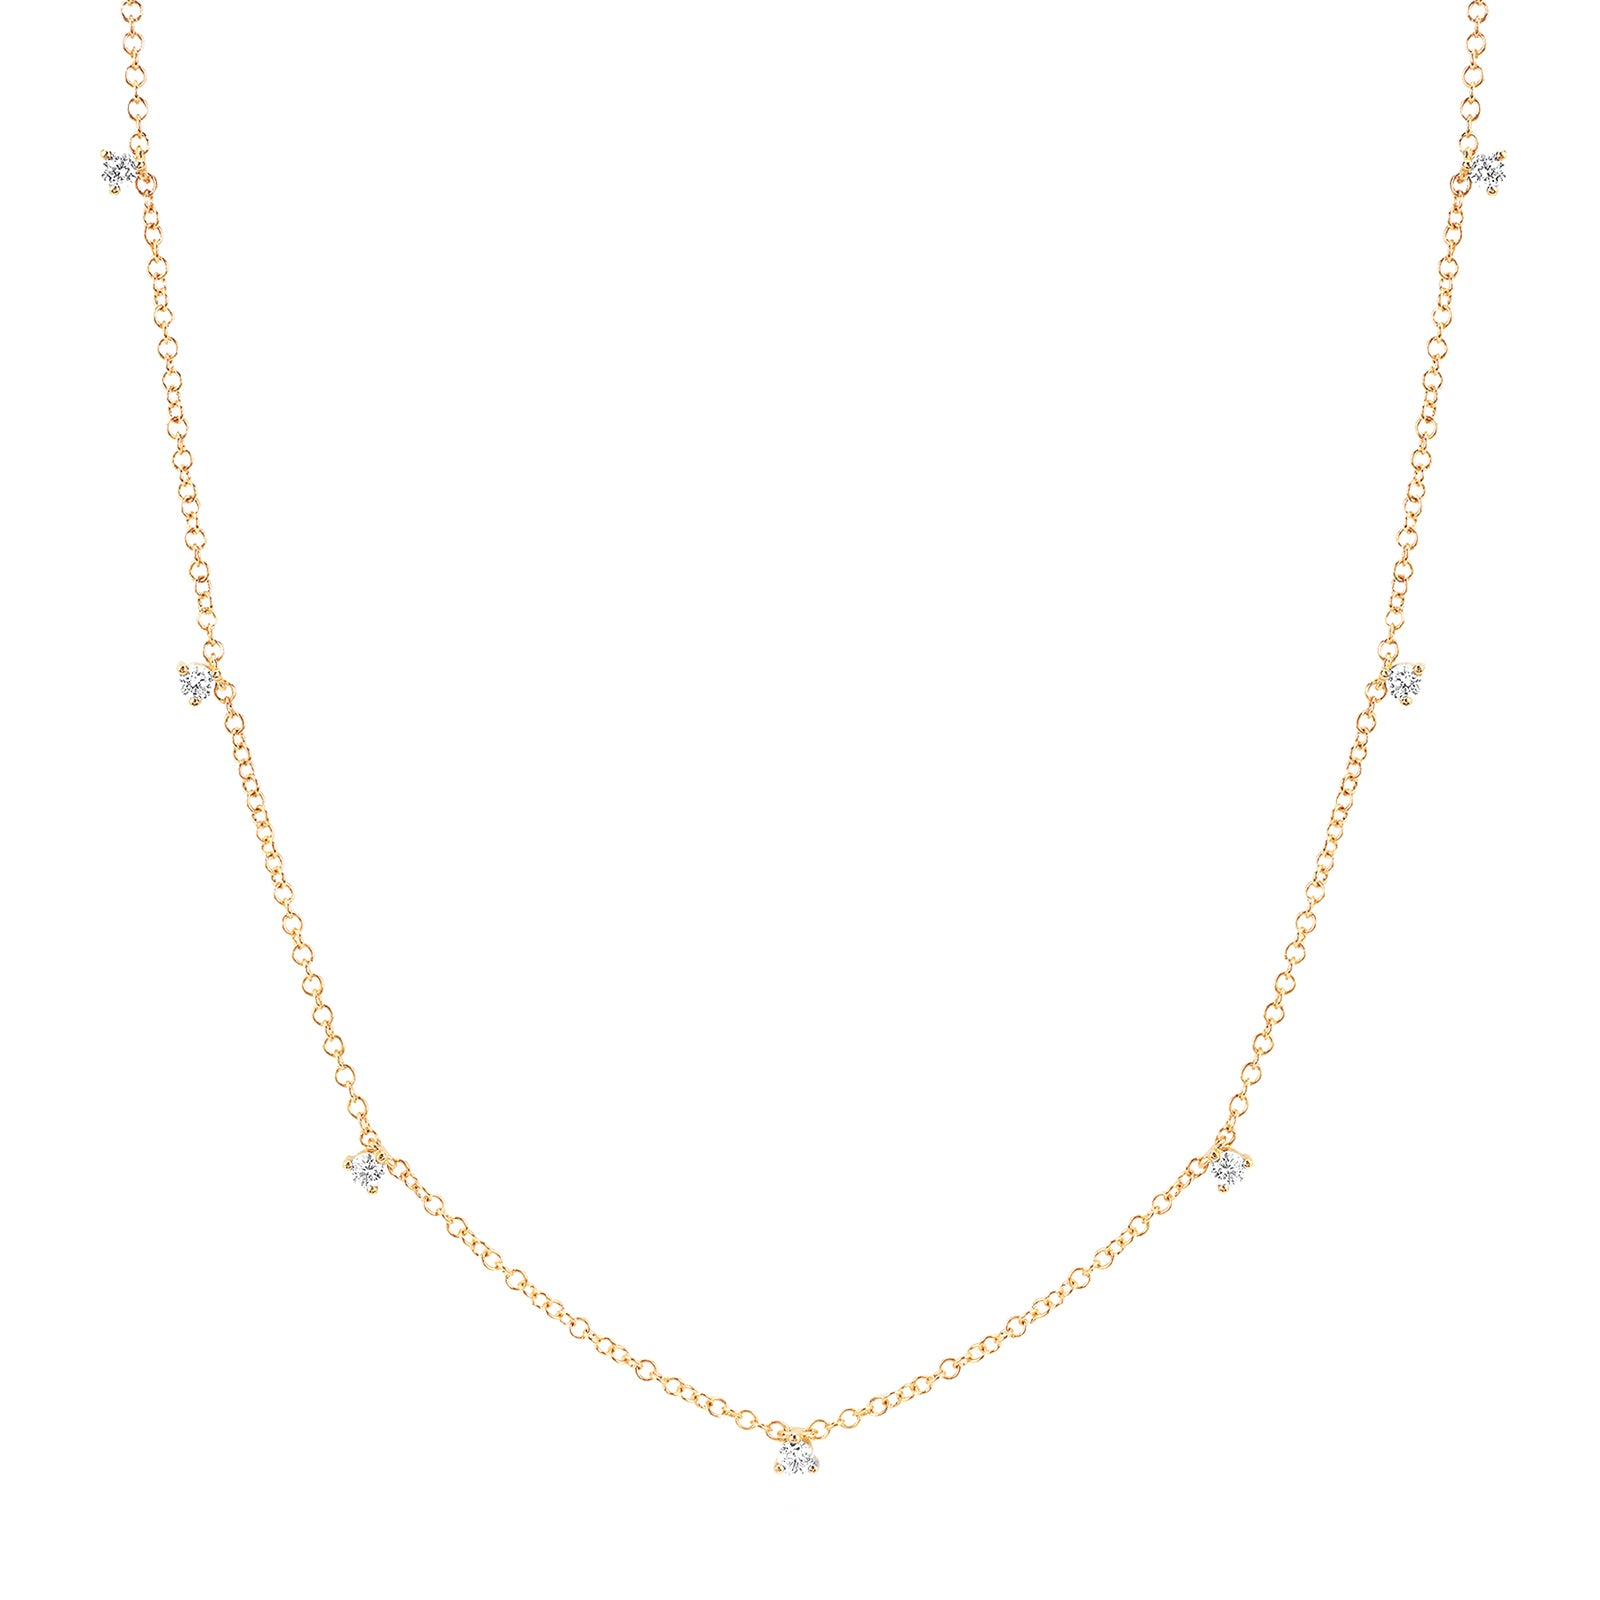 EF Collection 7 Prong Set Diamond Necklace - Yellow Gold - Necklaces - Broken English Jewelry